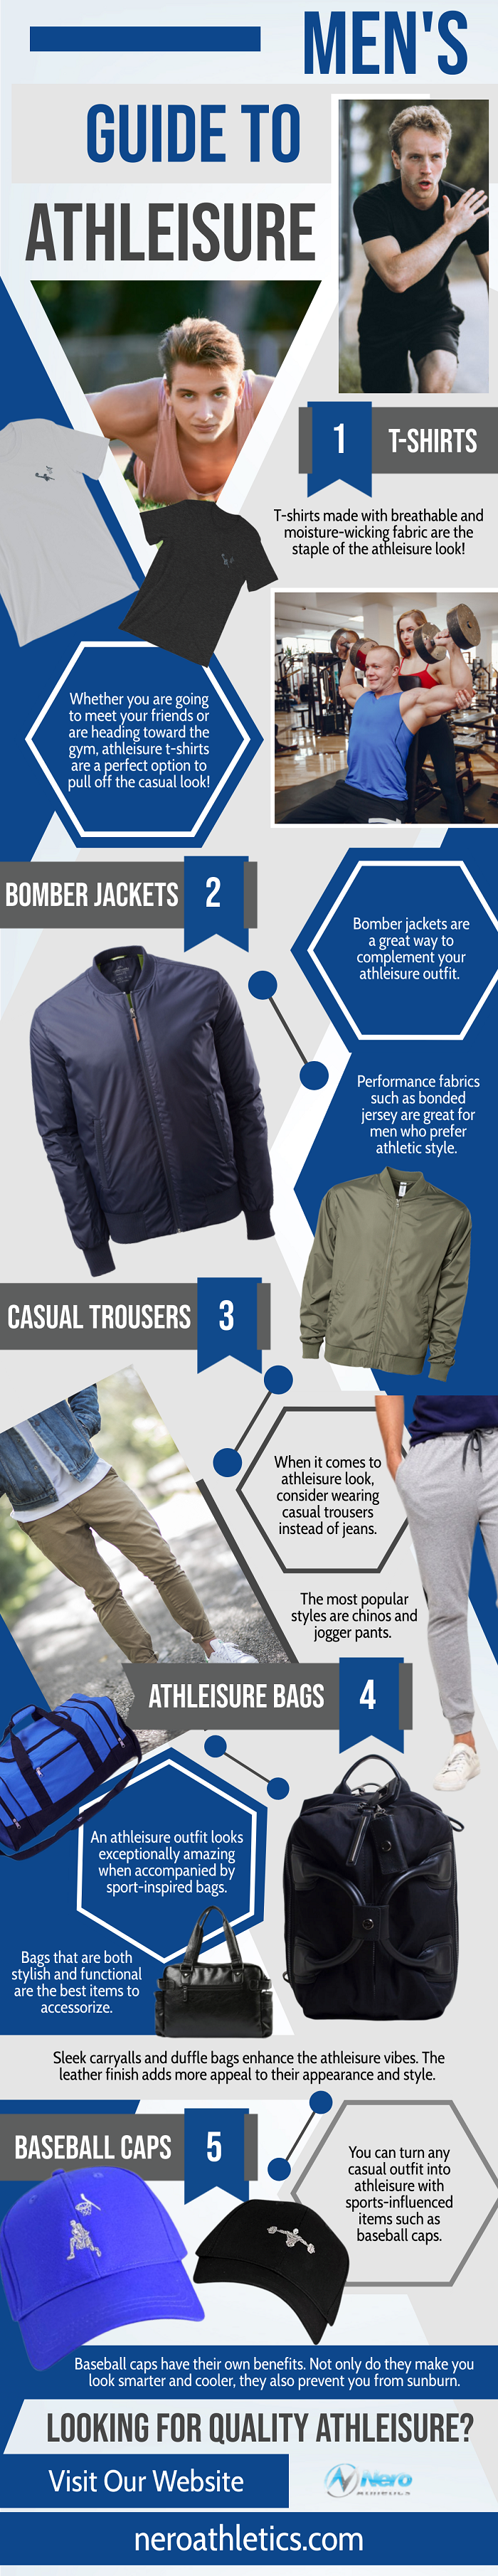 Guide To Athleisure